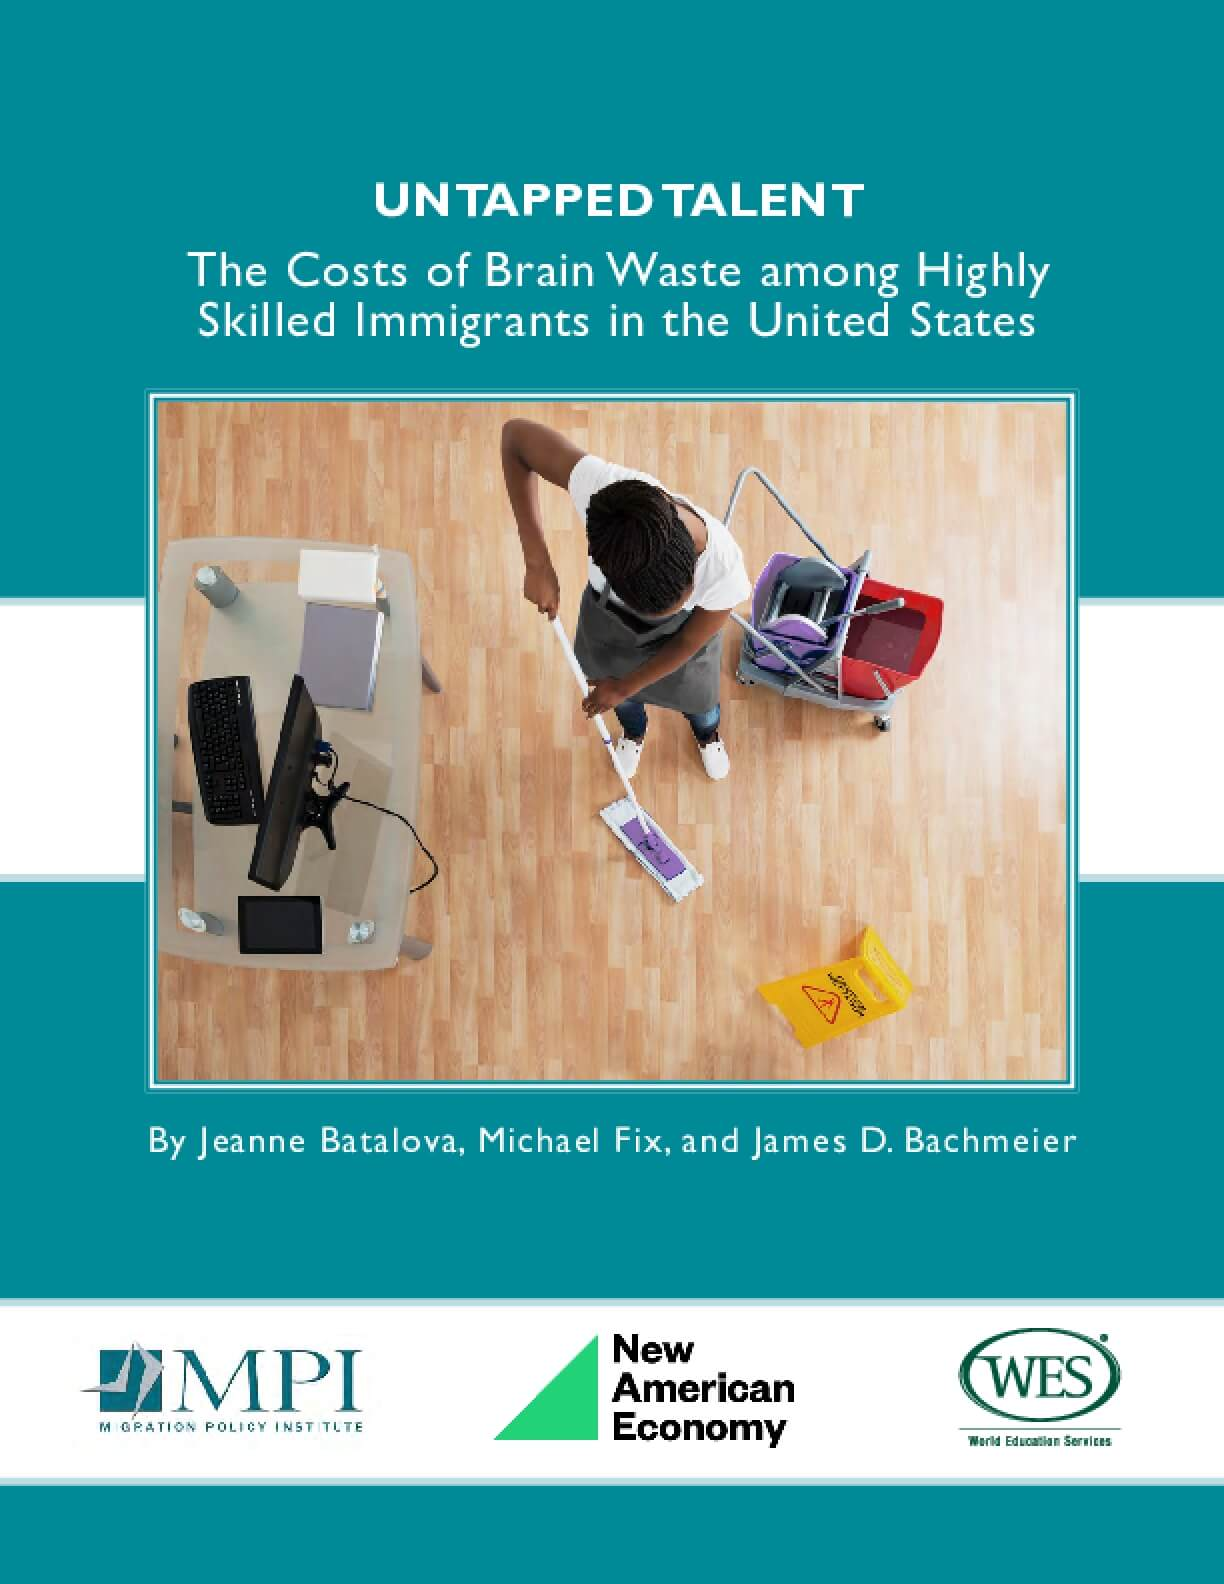 Untapped Talent: The Costs of Brain Waste among Highly Skilled Immigrants in the United States